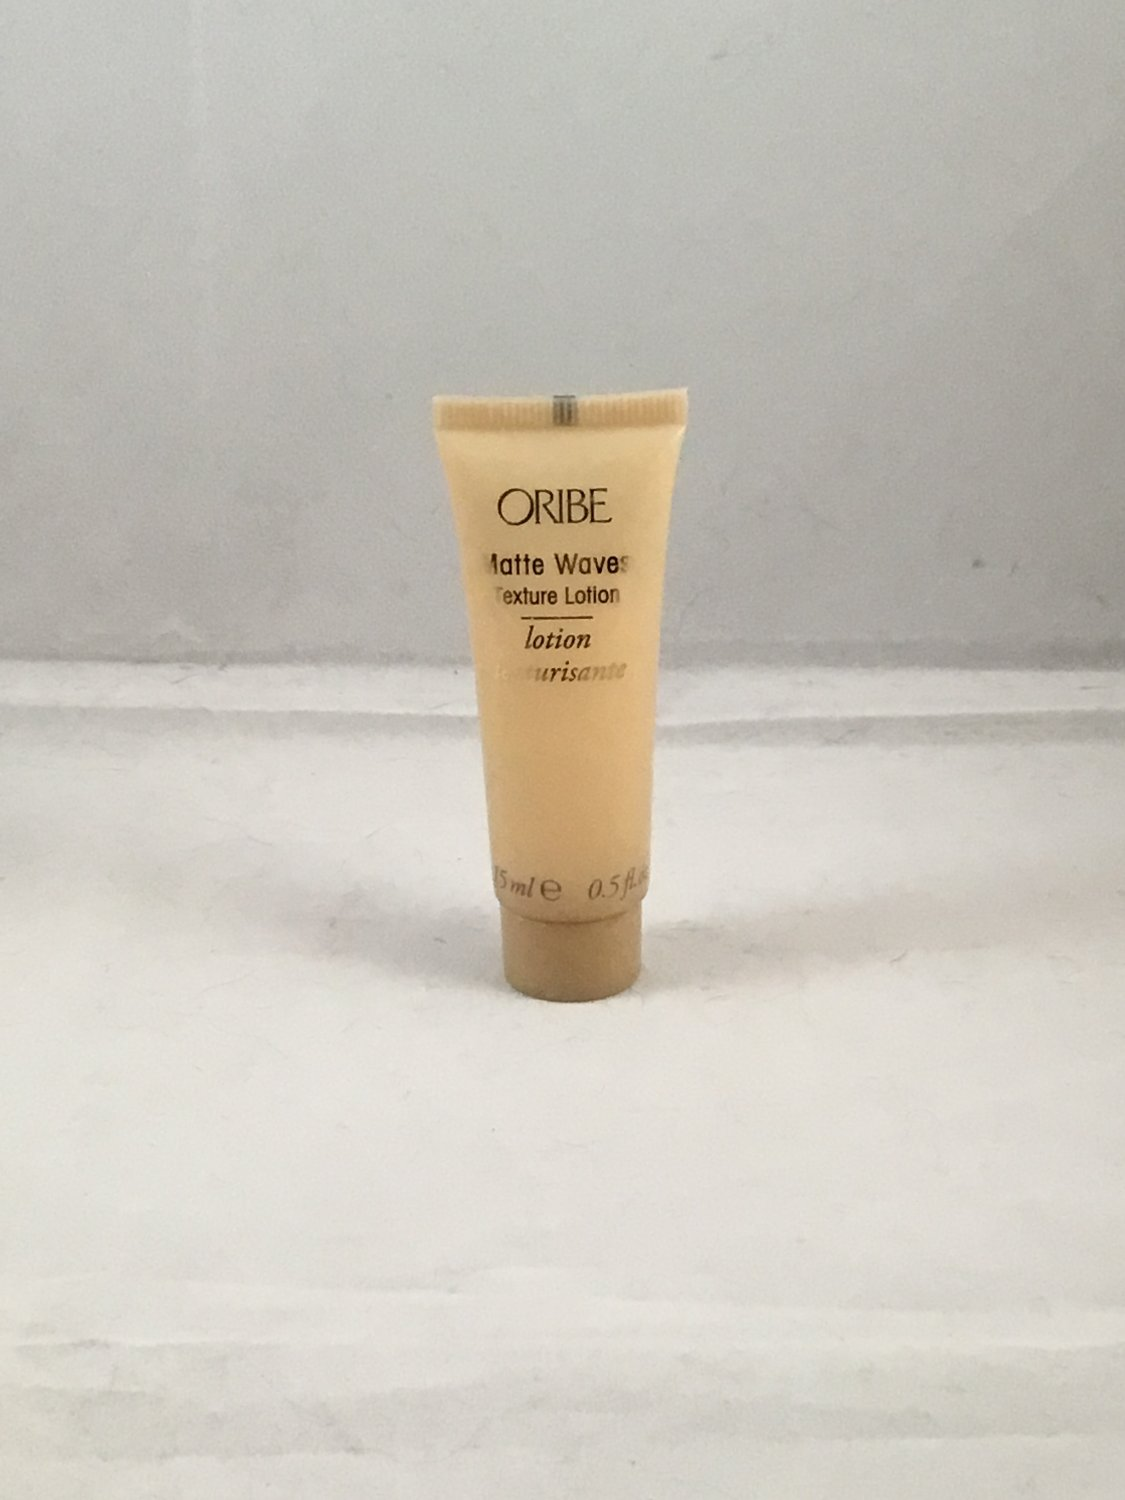 Oribe Matte Waves Texture Lotion Travel Size